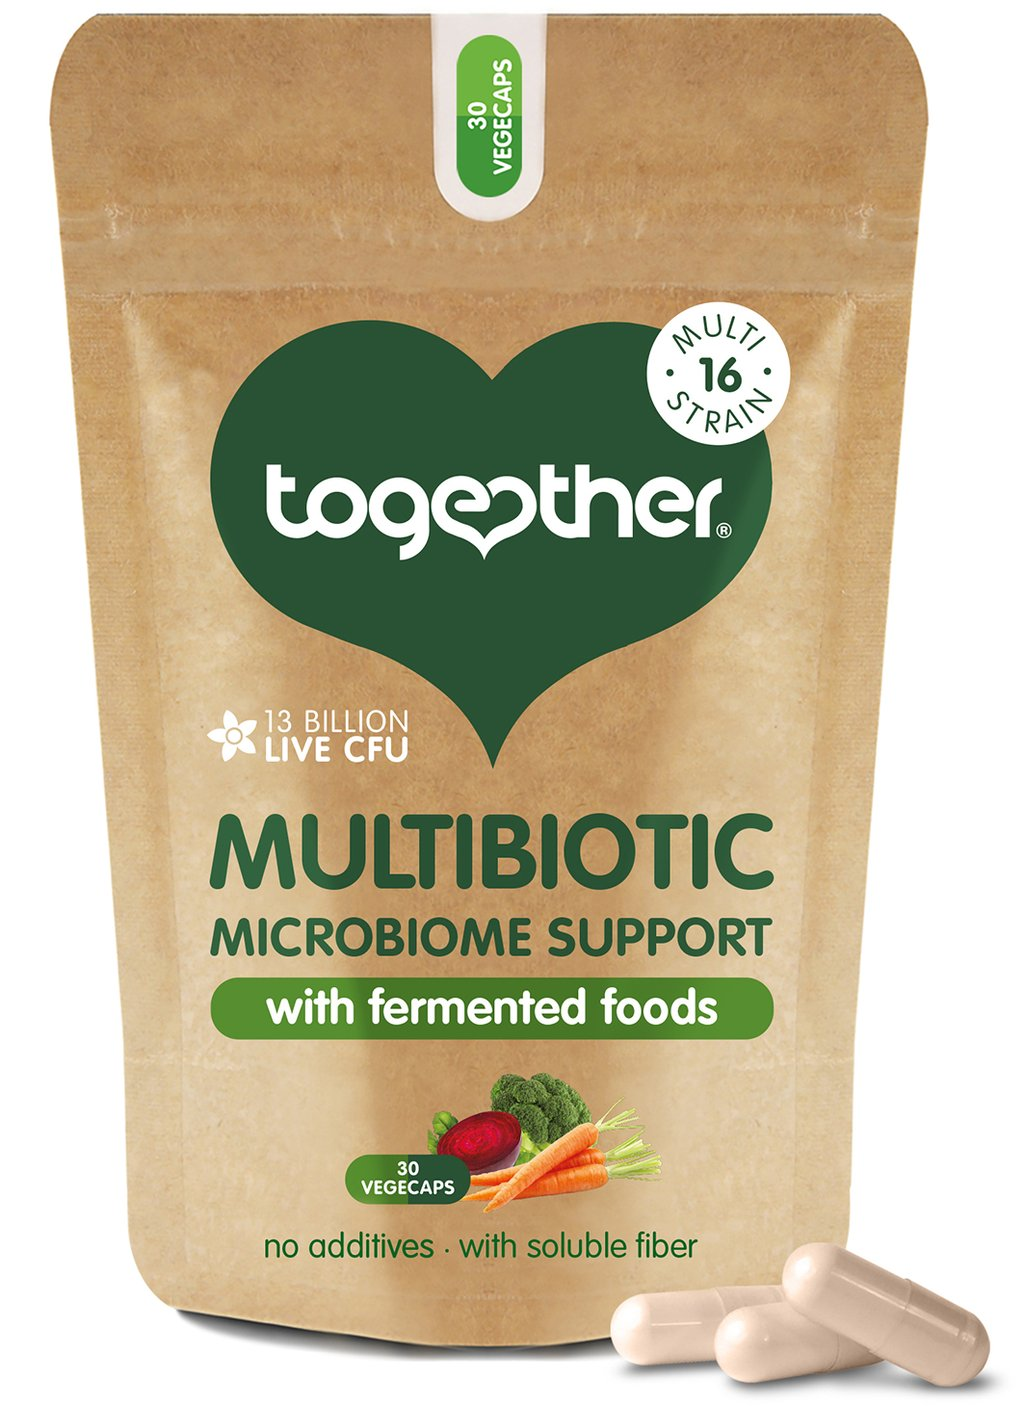 Multibiotic Microbiome Support 30's (Currently Unavailable)